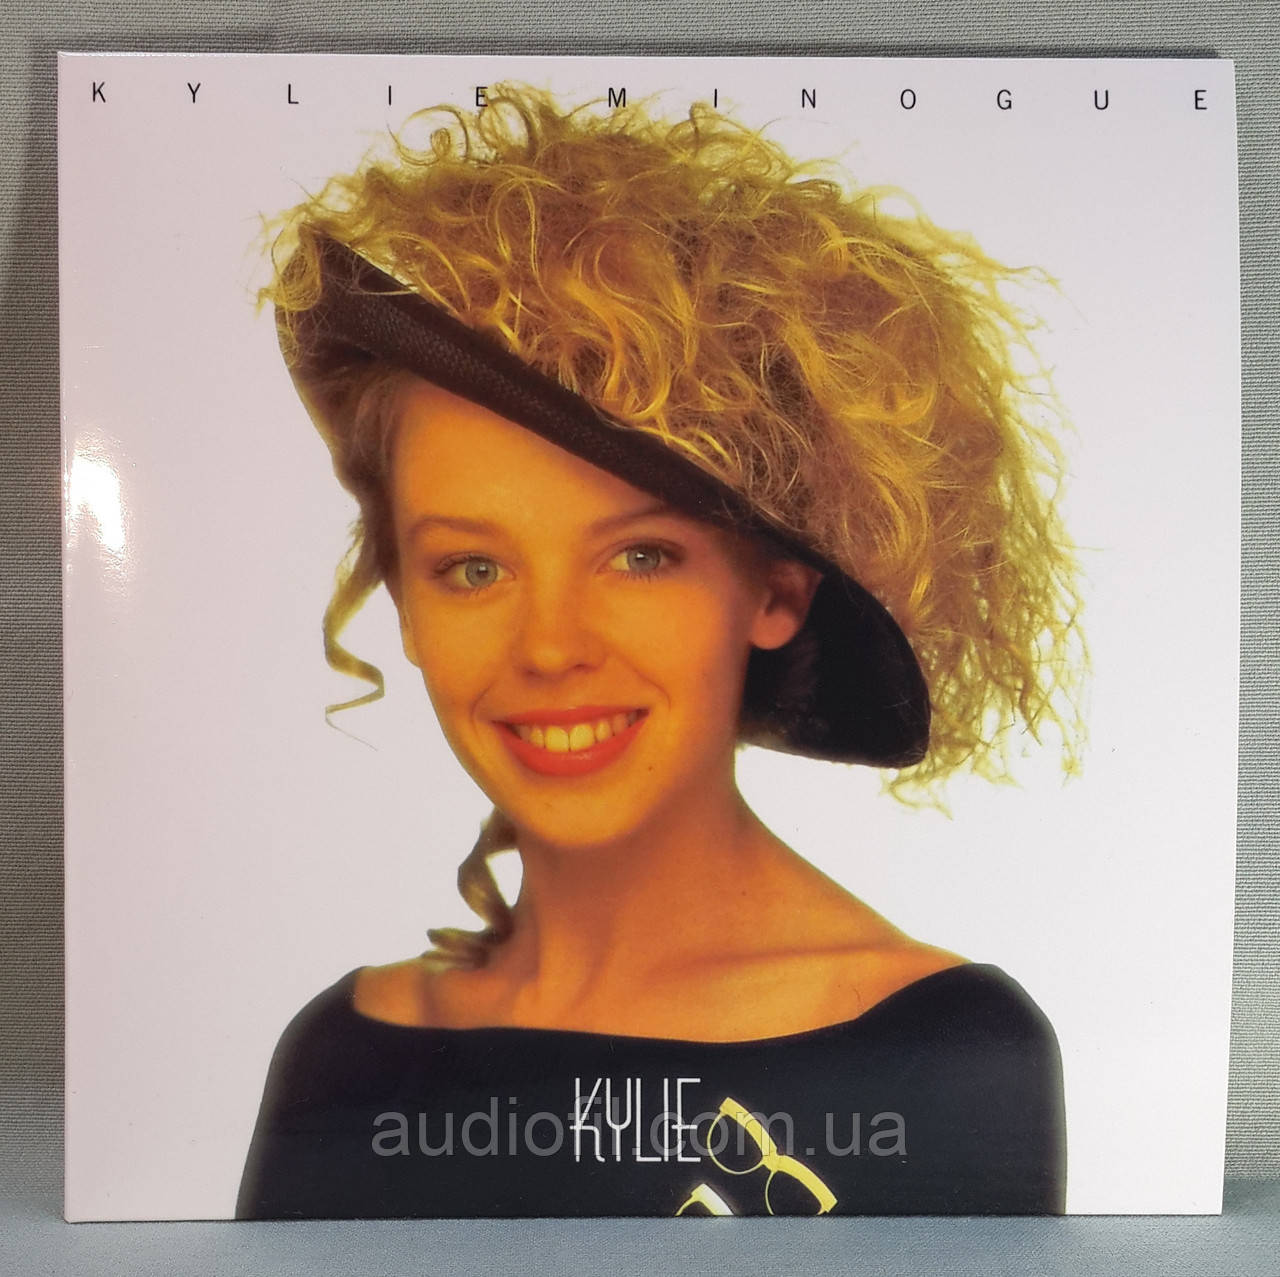 CD диск Kylie Minogue – Kylie, фото 1